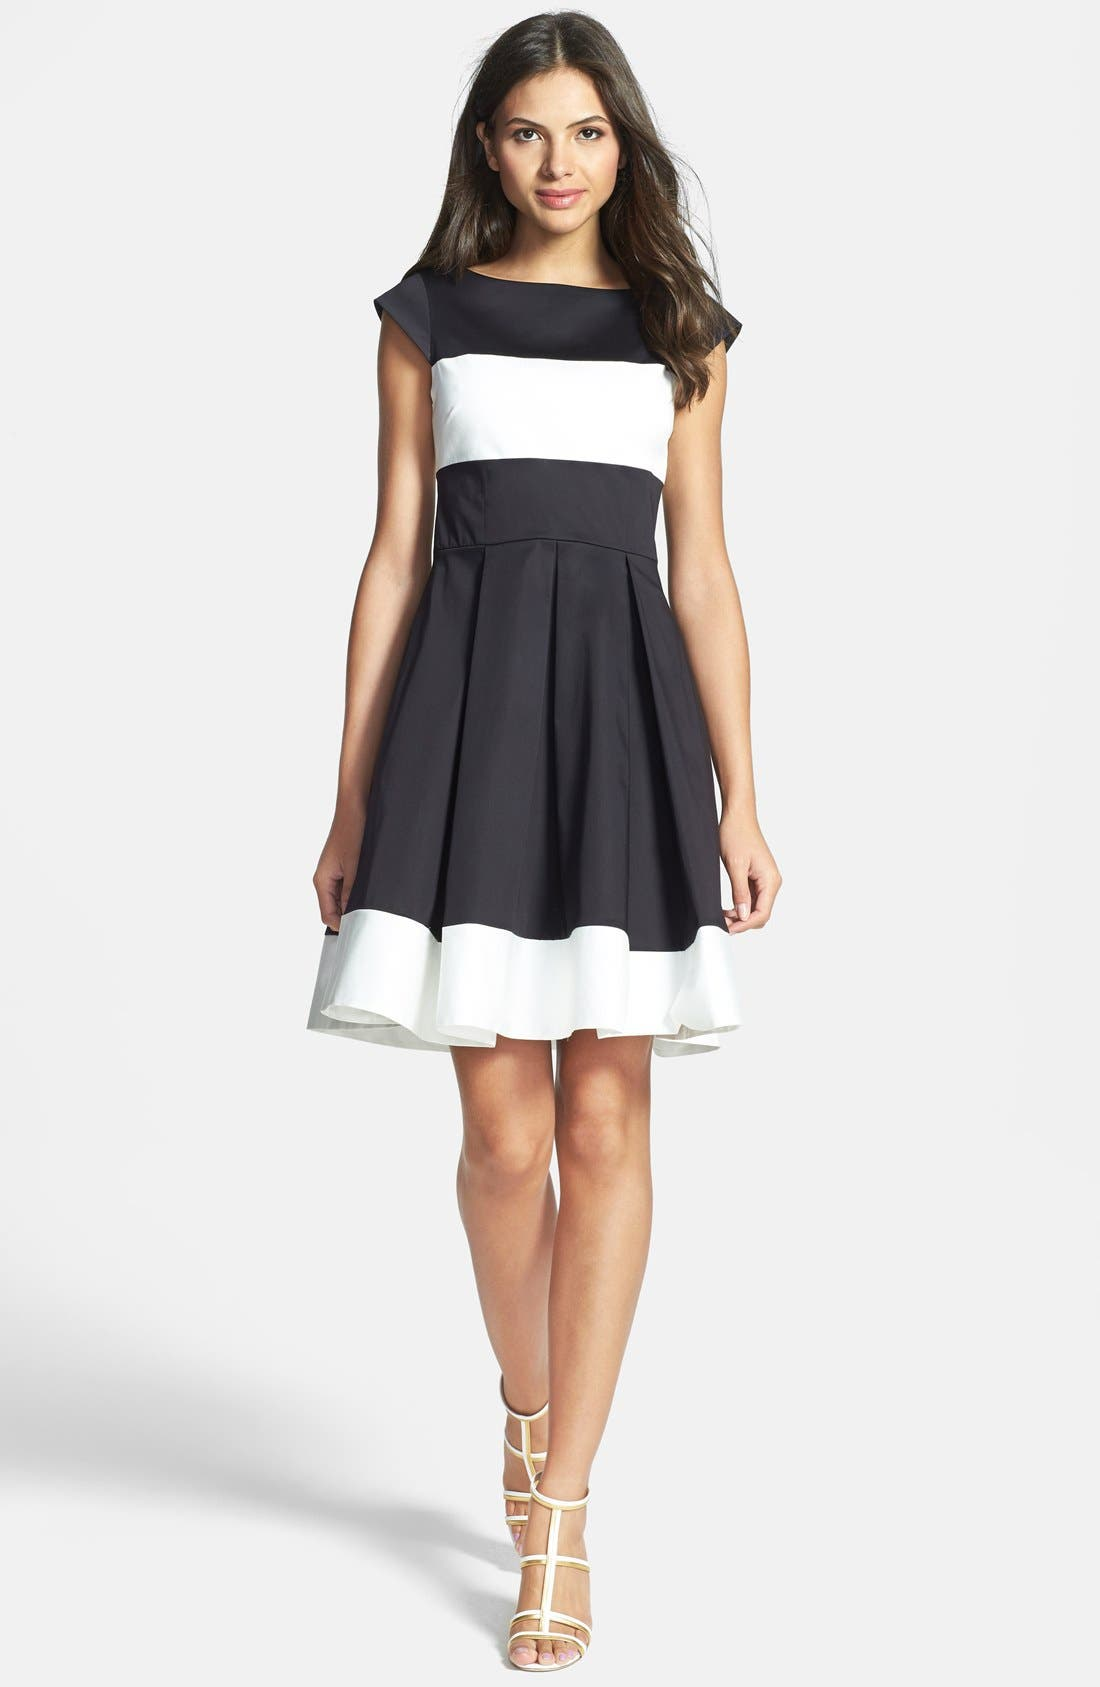 Alternate Image 1 Selected - kate spade new york 'adette' colorblock woven fit & flare dress